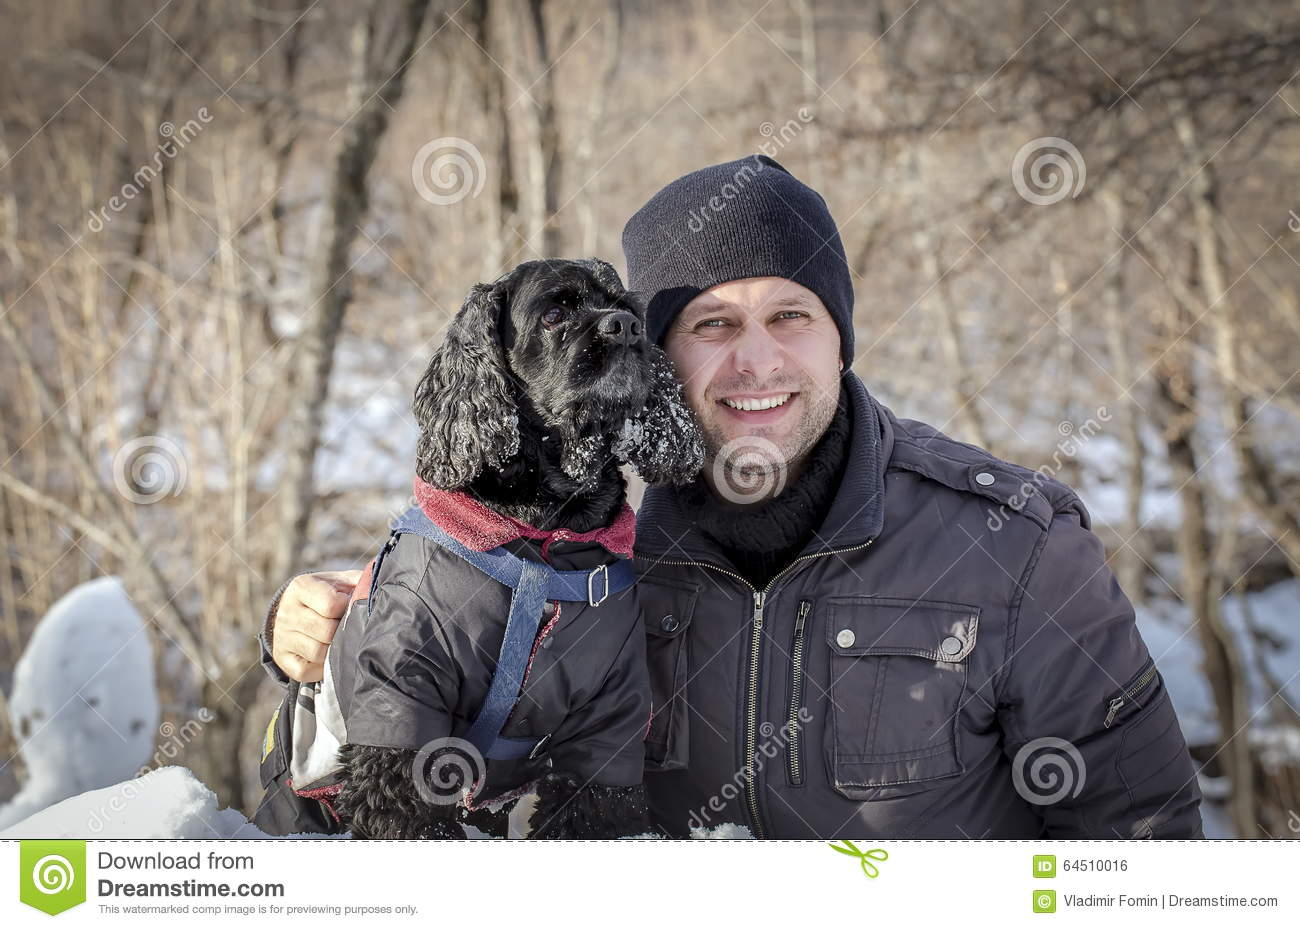 A dog and a man.